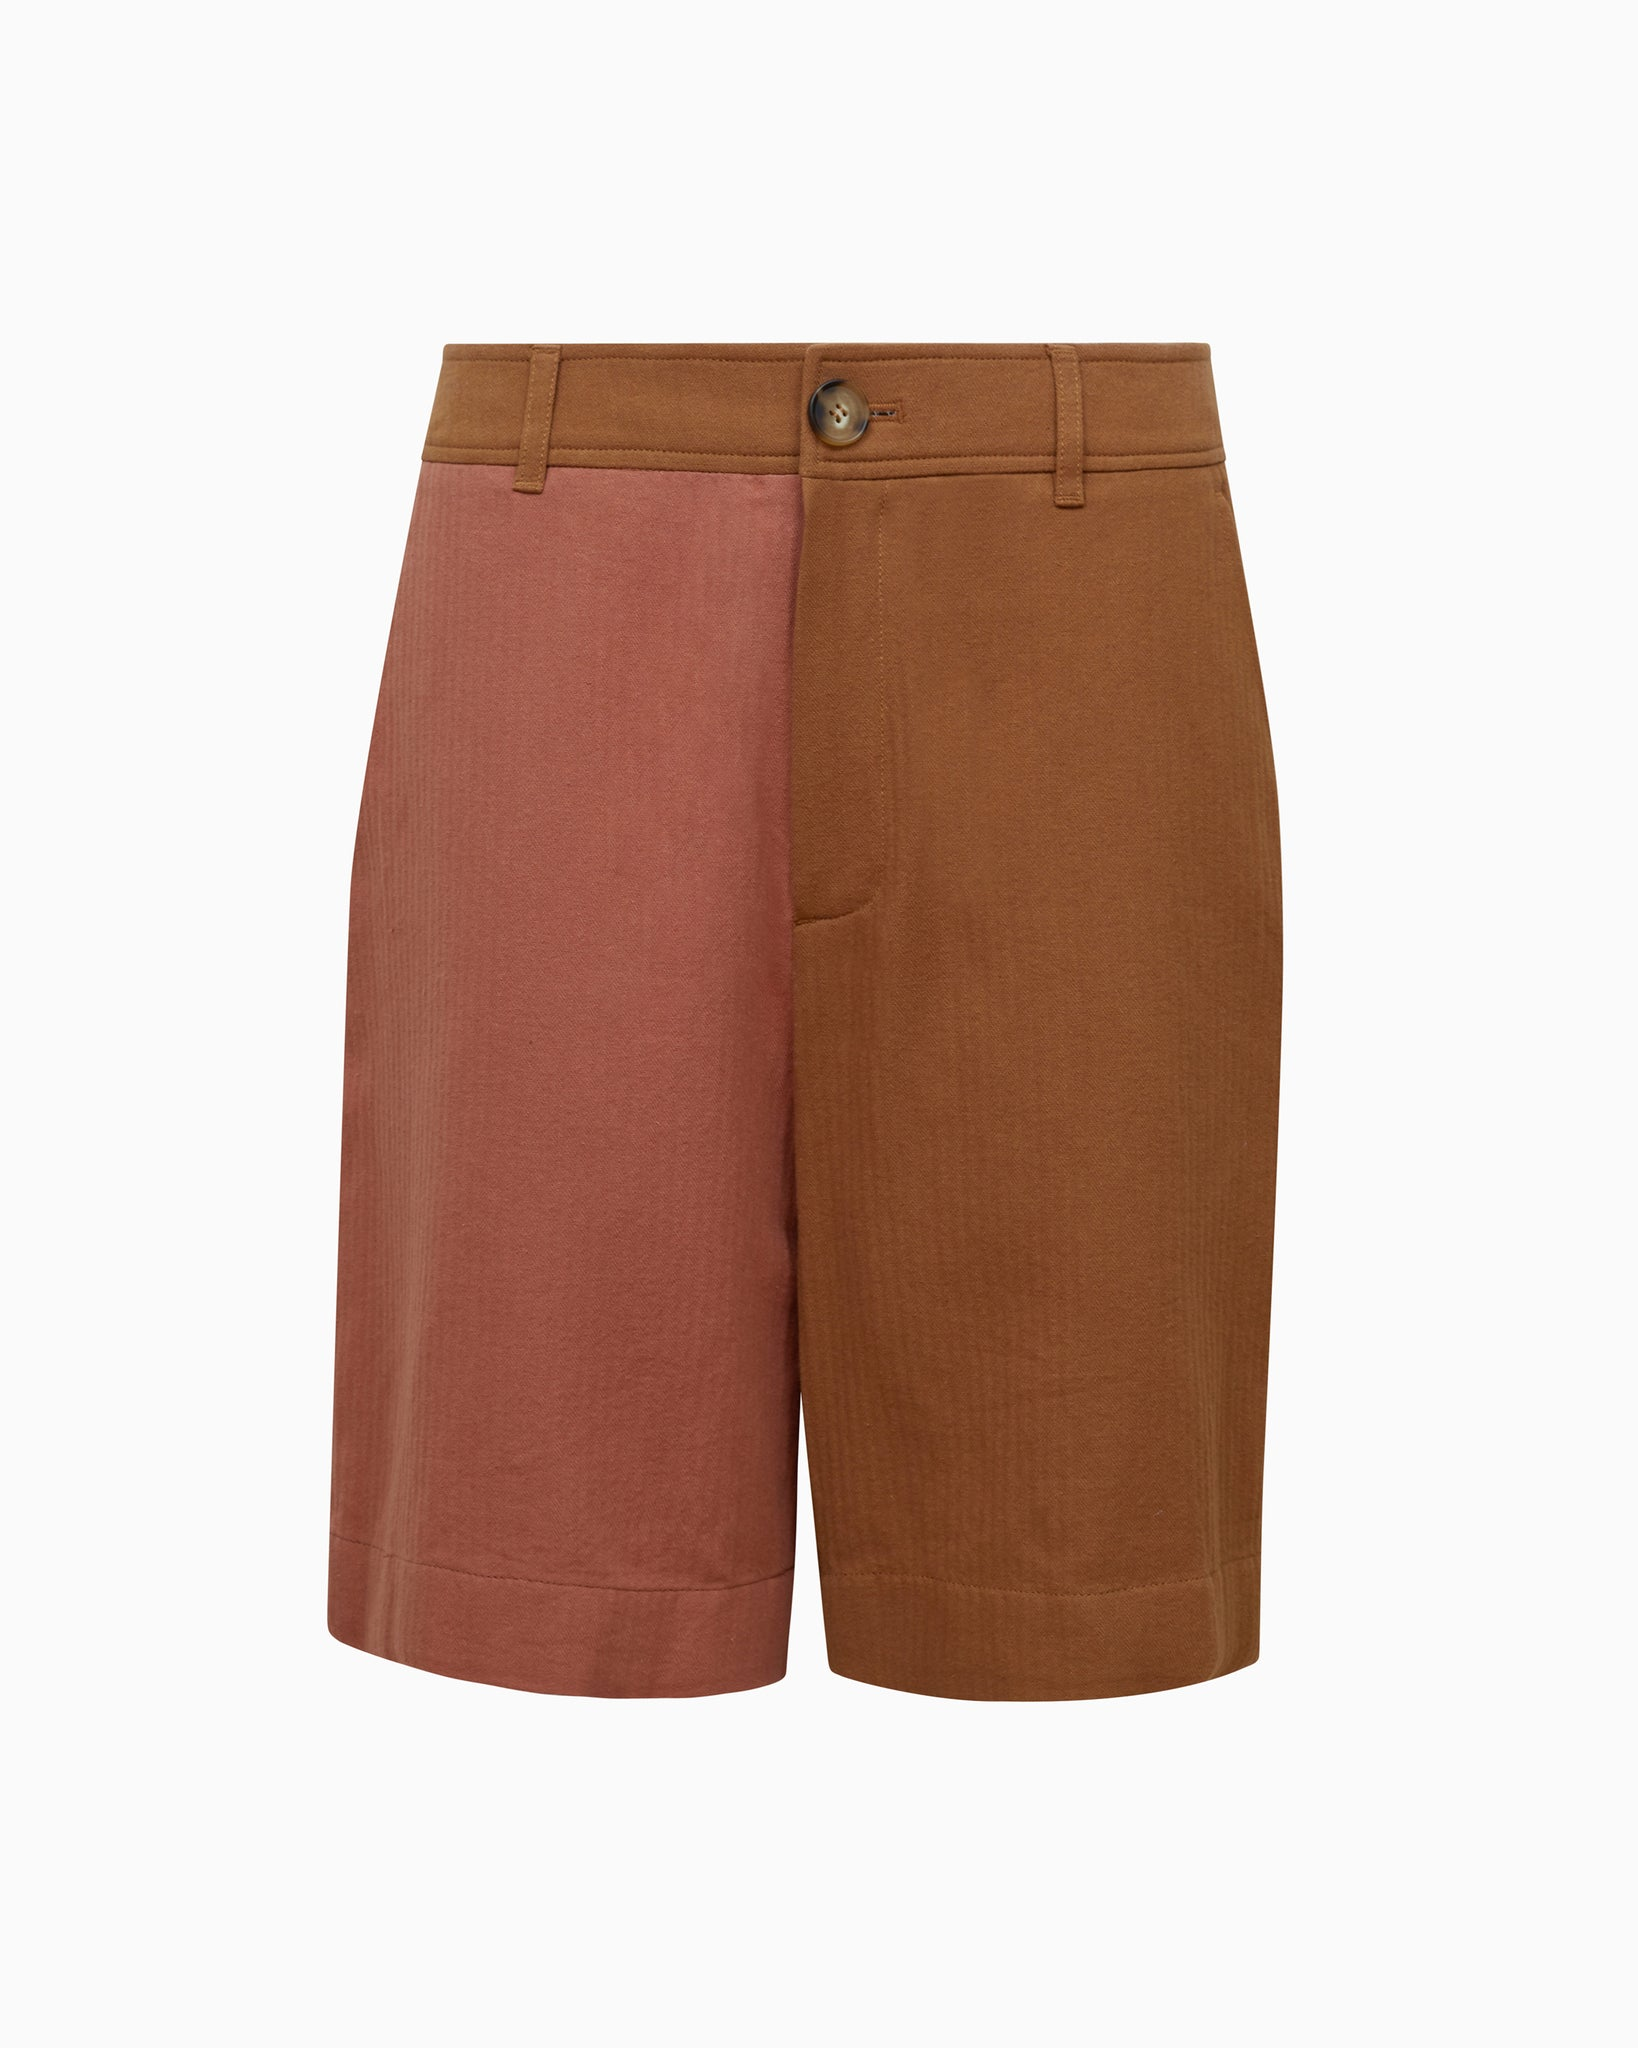 Marley Shorts Camel Mix